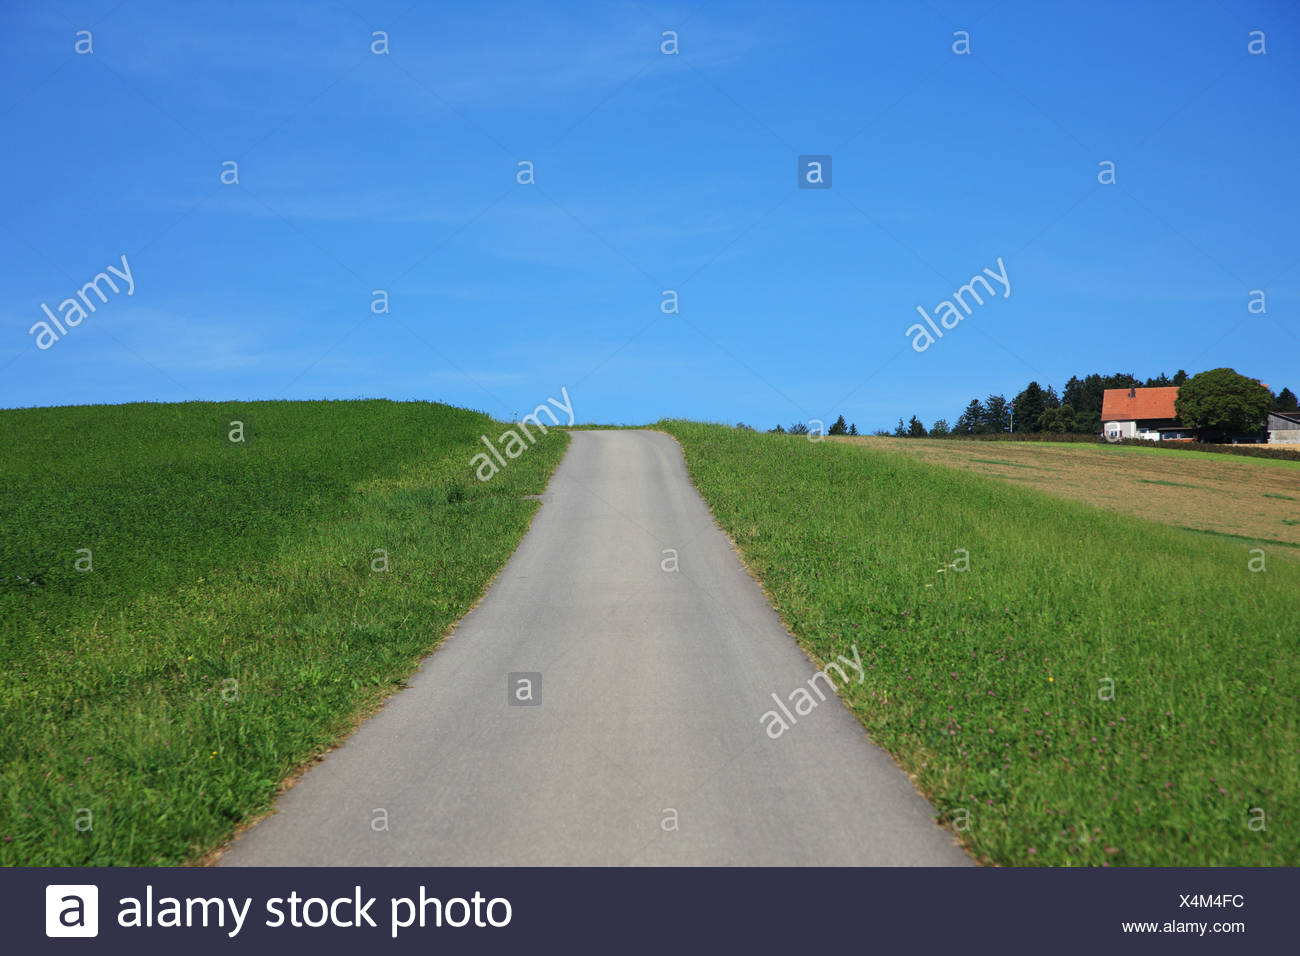 Road, Way, Forward, Horizon, Switzerland, Europe, canton  Lucerne, Rural, Tranquil, Landscape, Scenic, Outdoors, No People, Hori - Stock Image